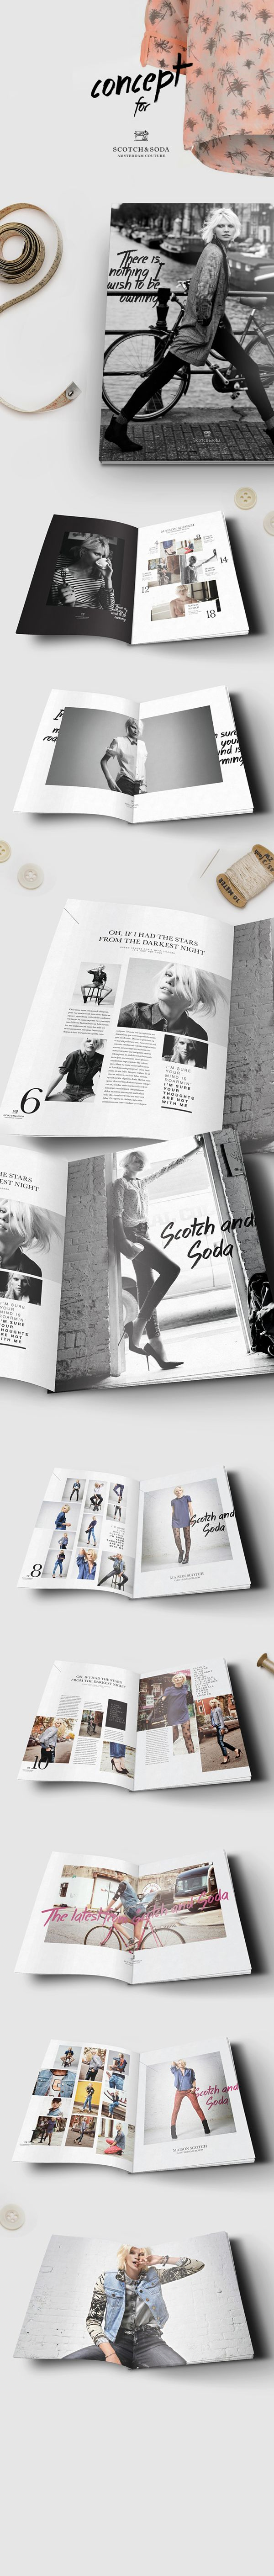 http://www.editorialdesignserved.co/gallery/Scotch-Soda-magazinelookbook-concept/10855849